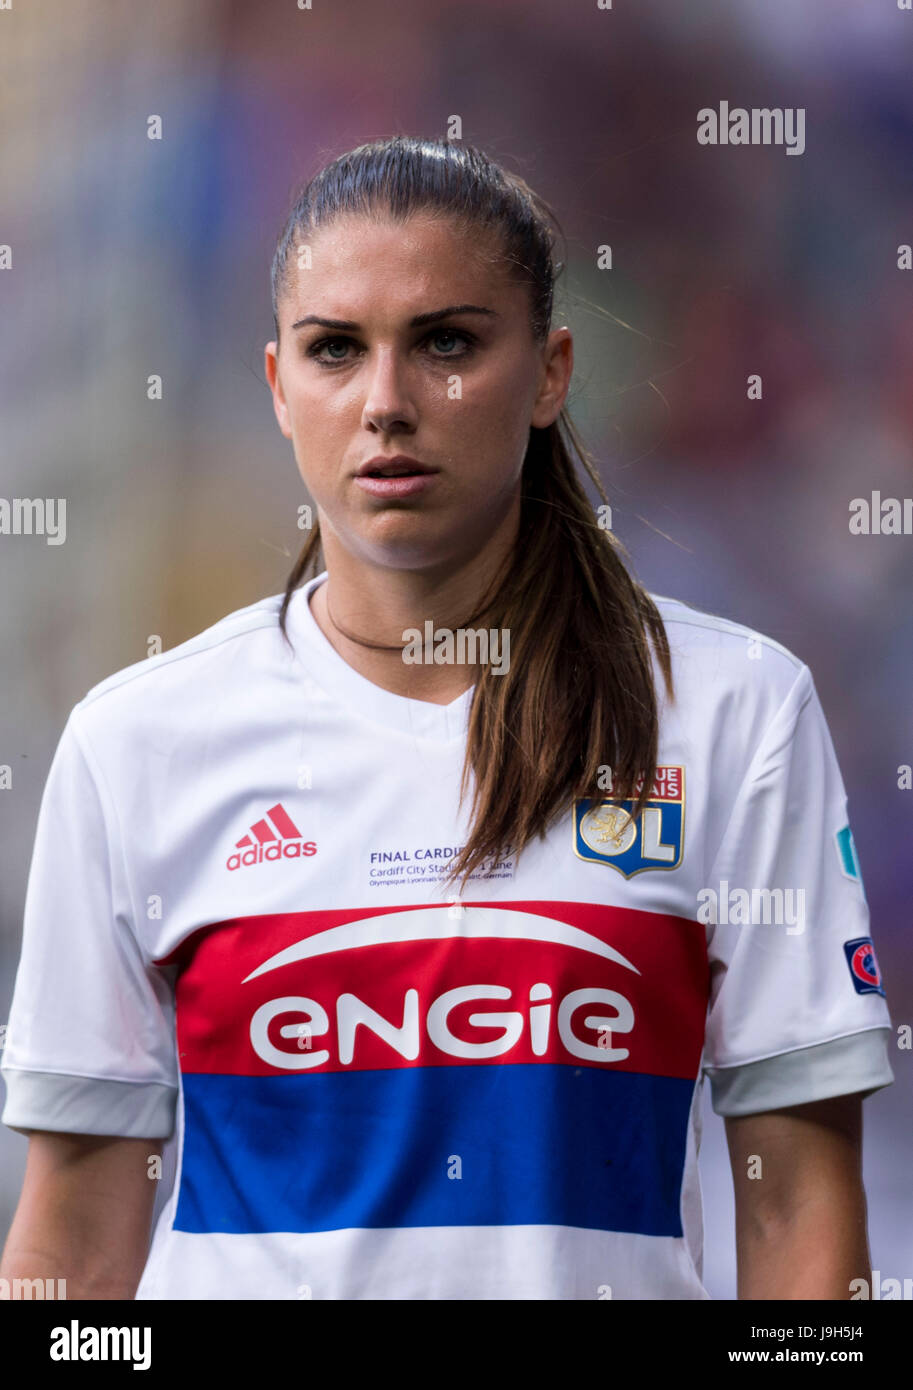 separation shoes 35df8 79e95 Cardiff, Wales. 1st June, 2017. Alex Morgan (Lyon) Football ...